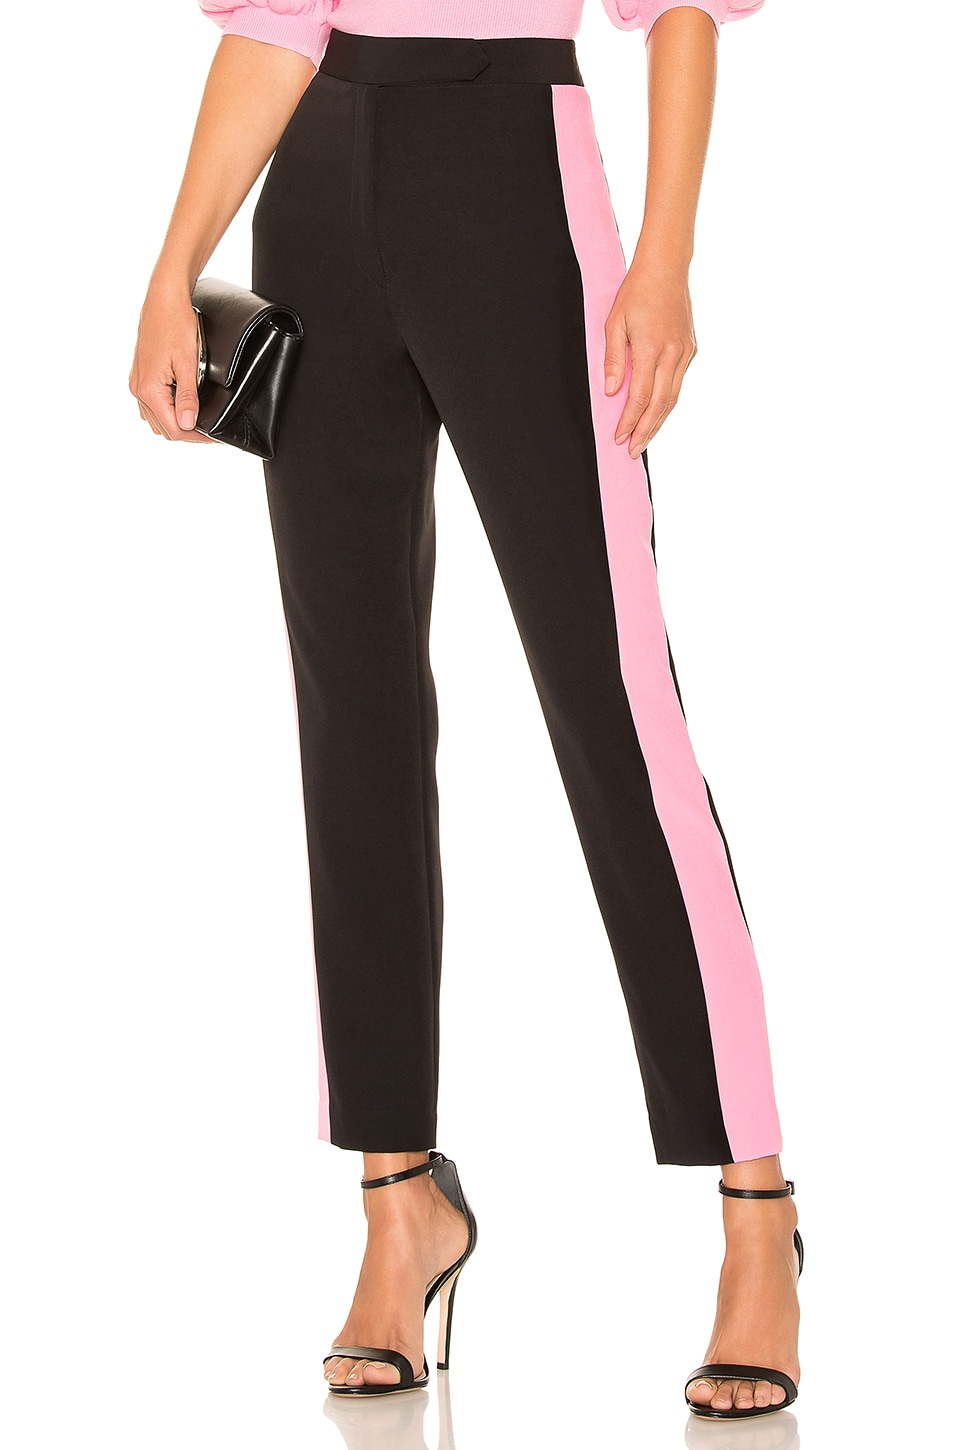 MILLY High Waist Side Combo Skinny Pant in Black & Candy Pink